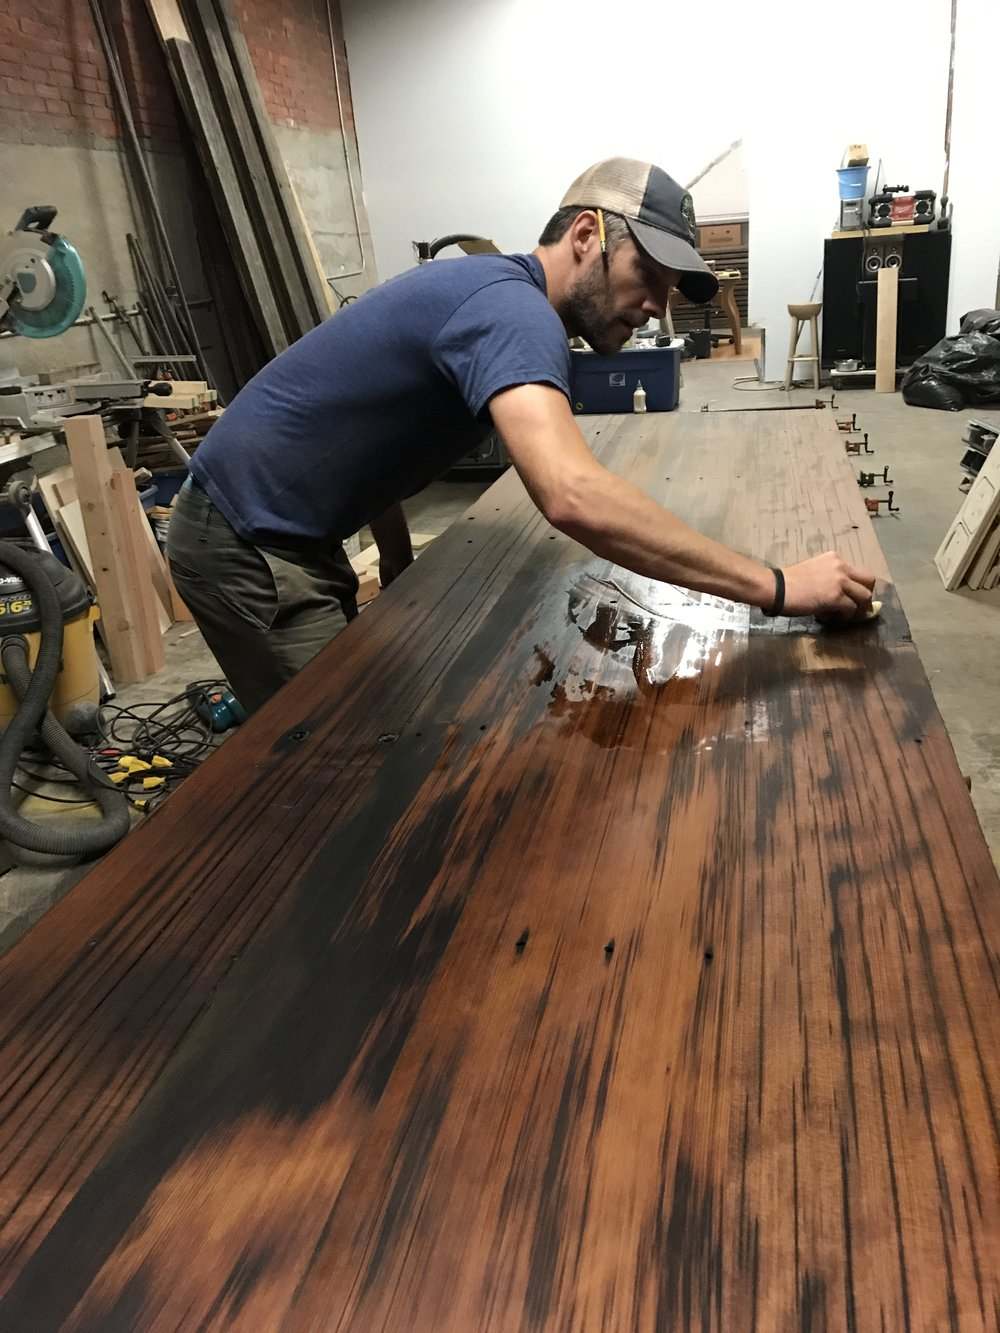 Tim applying the first coat of Danish oil to the redwood.